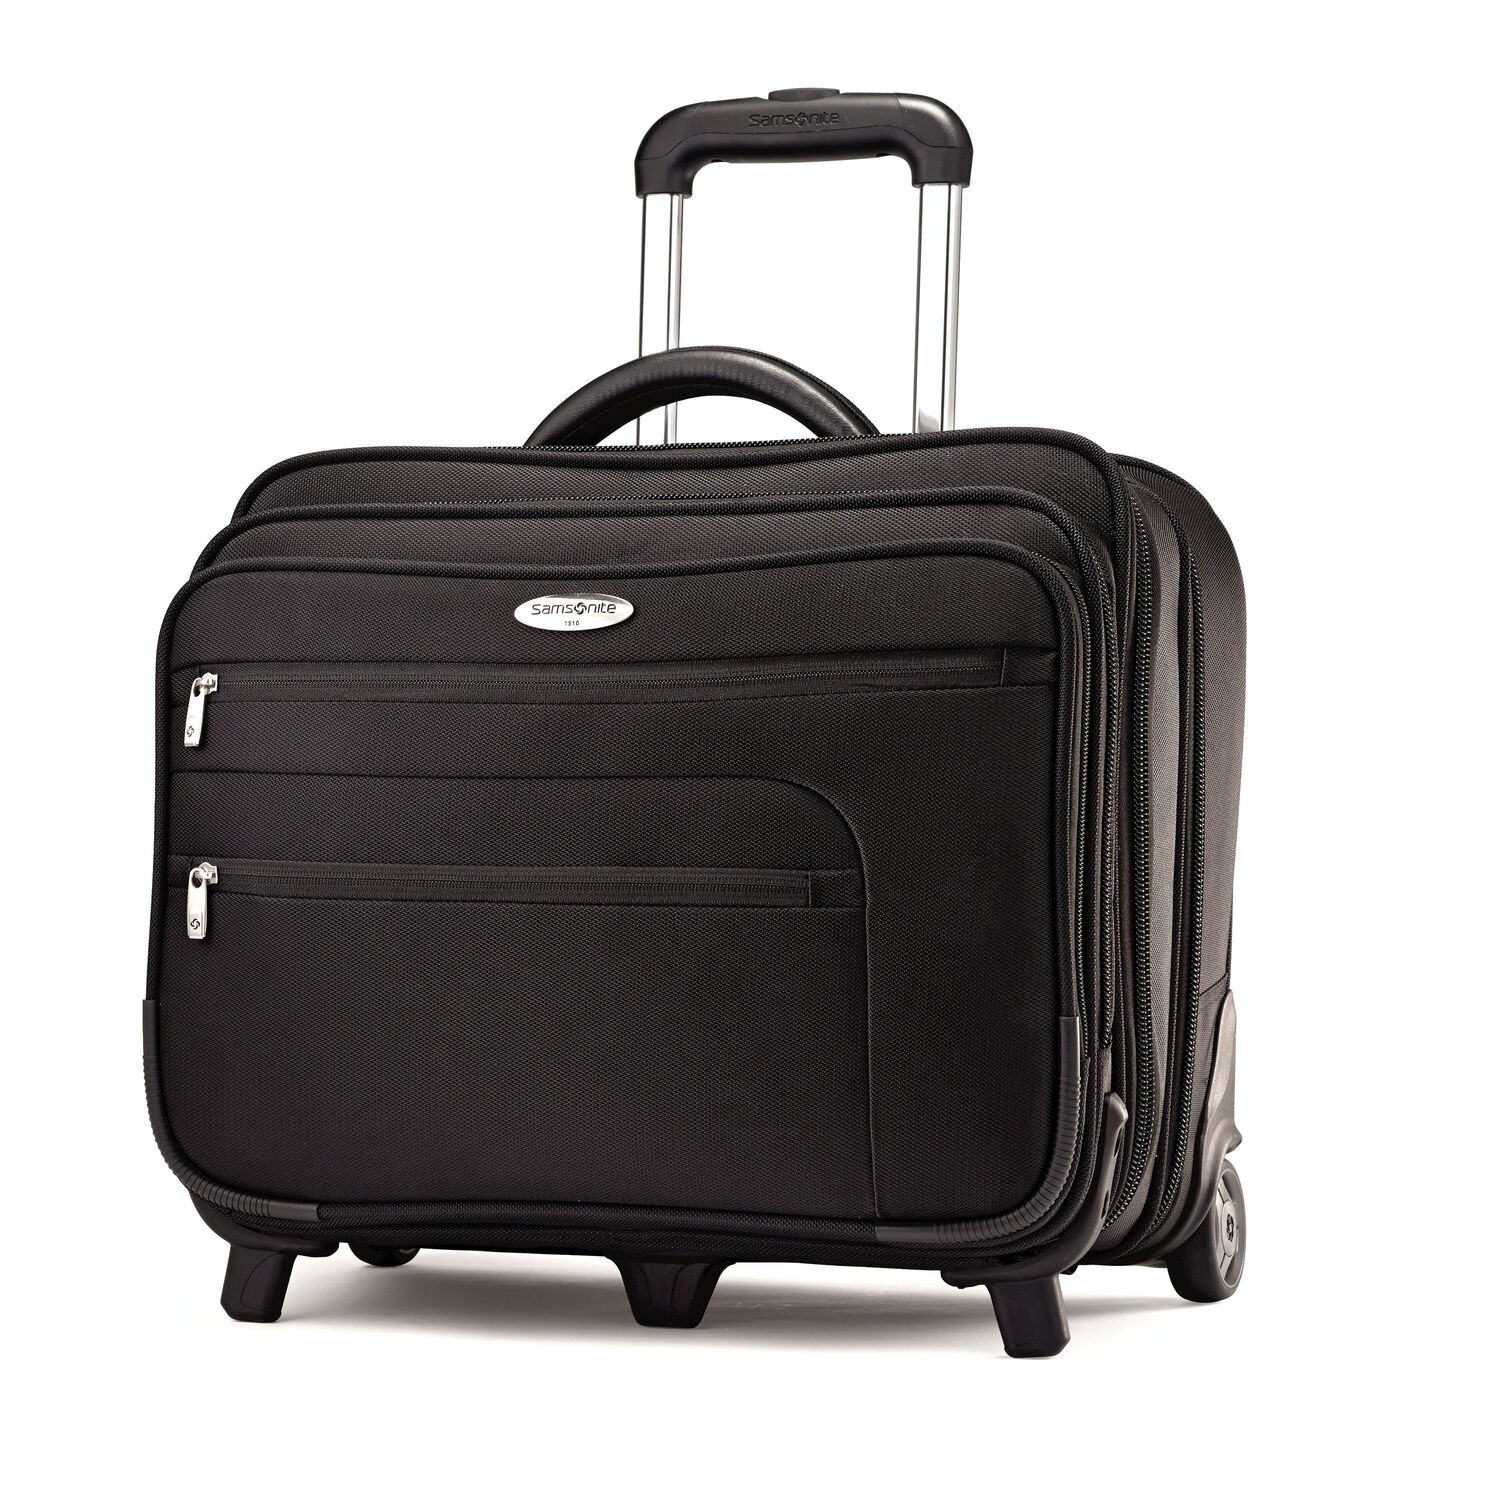 Samsonite business wheeled business case overnighter in the color black